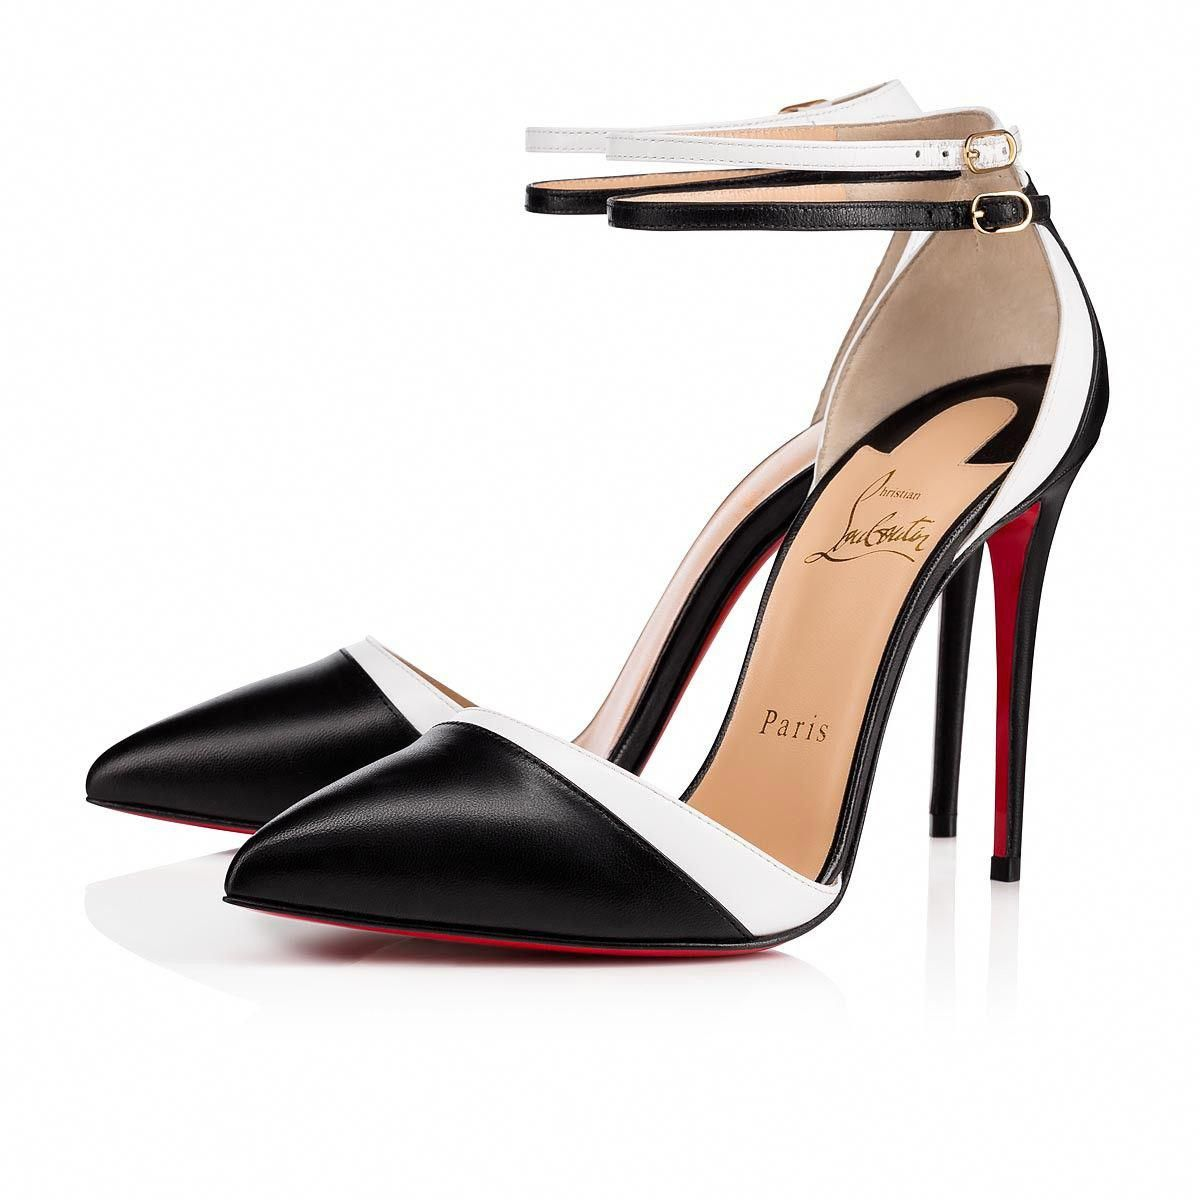 c90bce77eb7 Christian Louboutin United States Official Online Boutique - Uptown ...